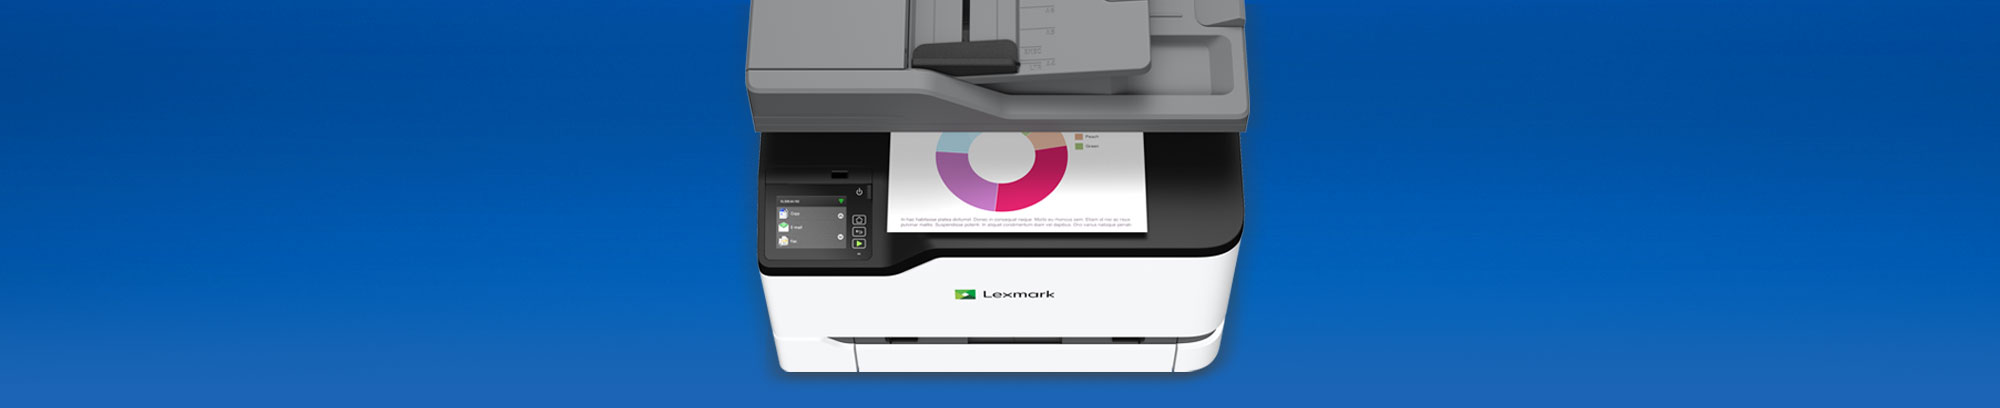 Cool savings on high performance Lexmark devices in our GO Line Series